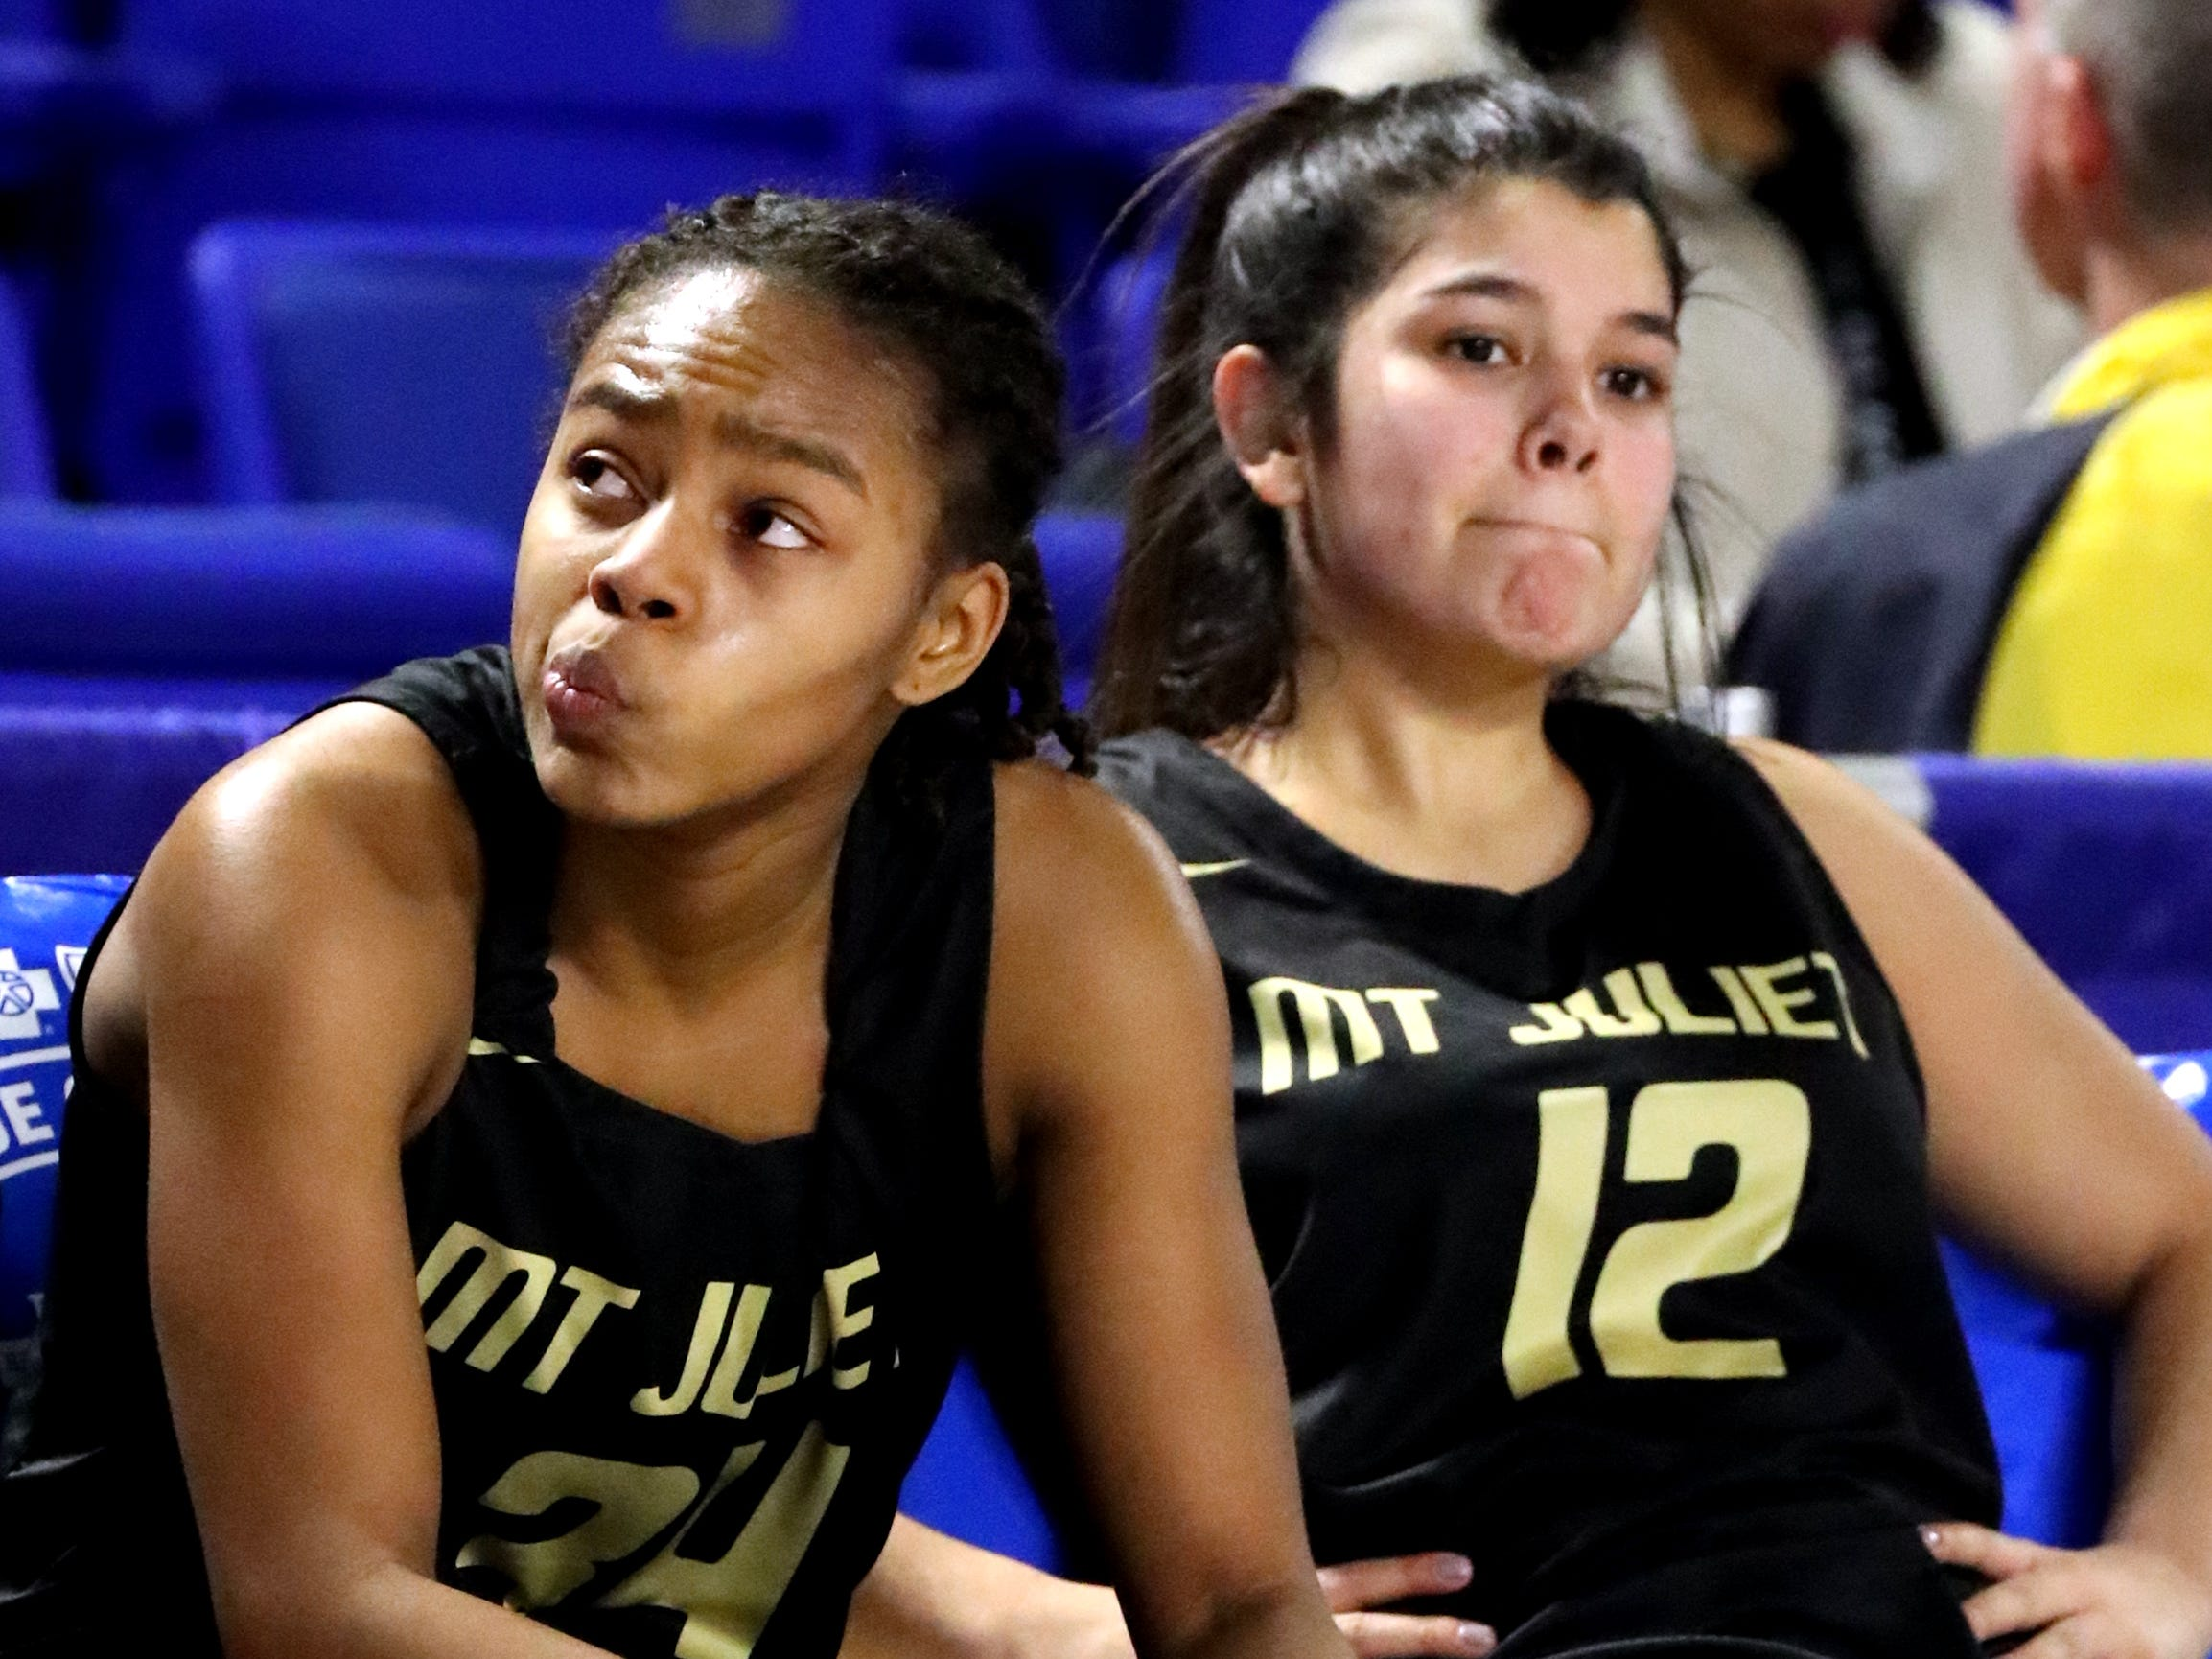 Mt. Juliet's Nevaeh Majors (24) and Ryleigh Osborne (12) react to losing in the final seconds of the game against the Houston during the quarterfinal round of the TSSAA Div. 1 Class AAA Girls State Tournament, on Wednesday, March 6, 2019, at Murphy Center in Murfreesboro, Tenn.